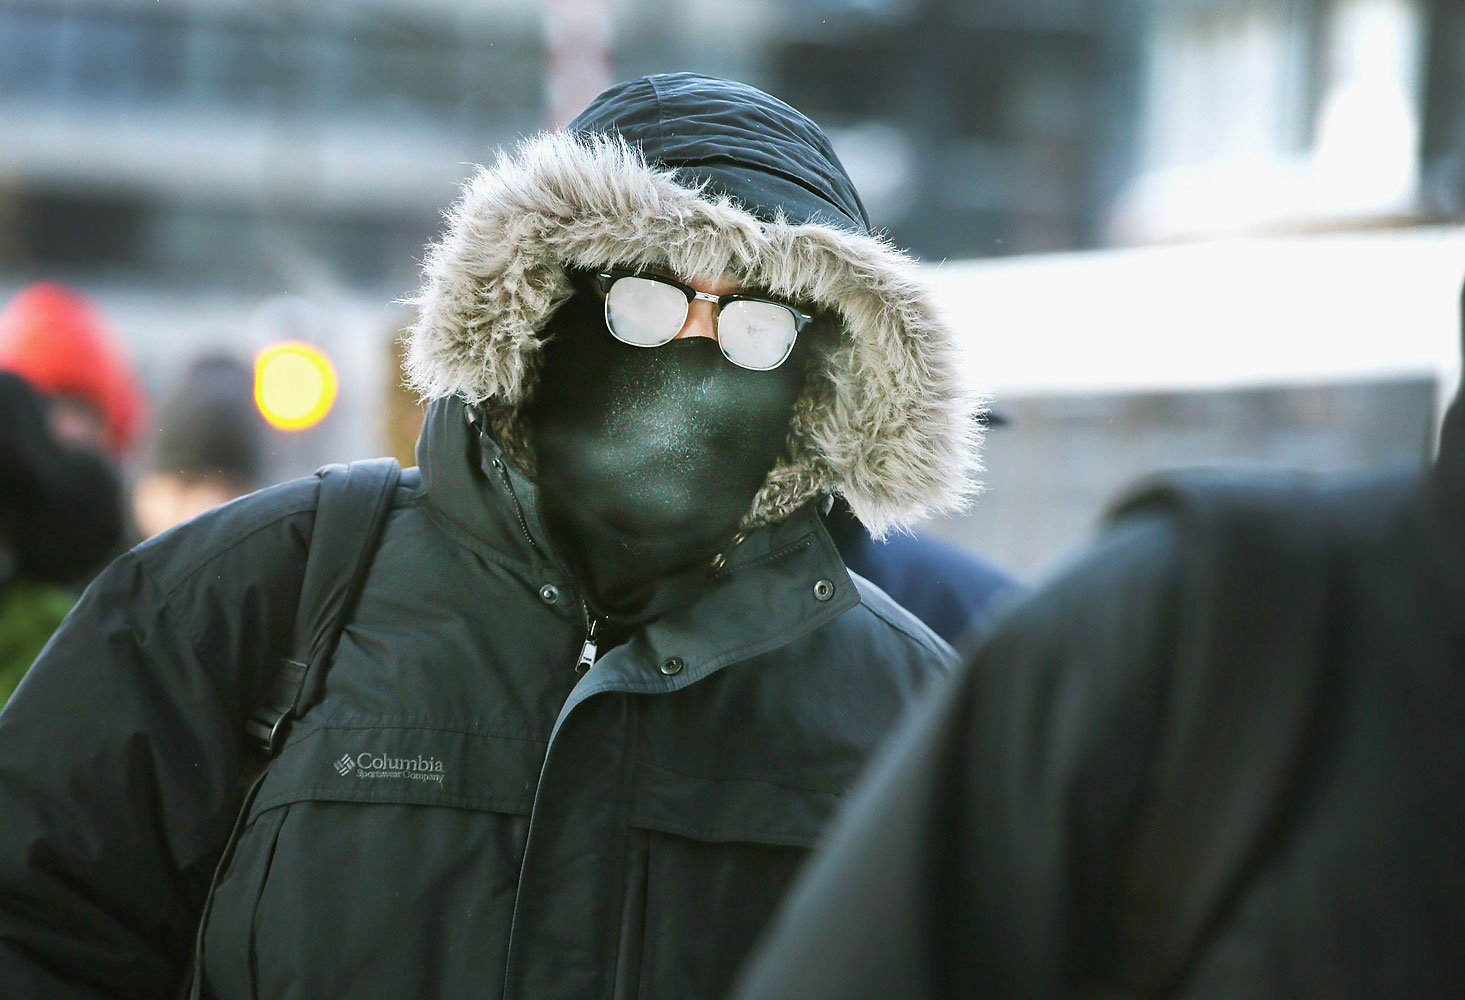 Commuters make a sub-zero trek to offices in the Loop on Jan. 6, 2014 in Chicago, Ill.